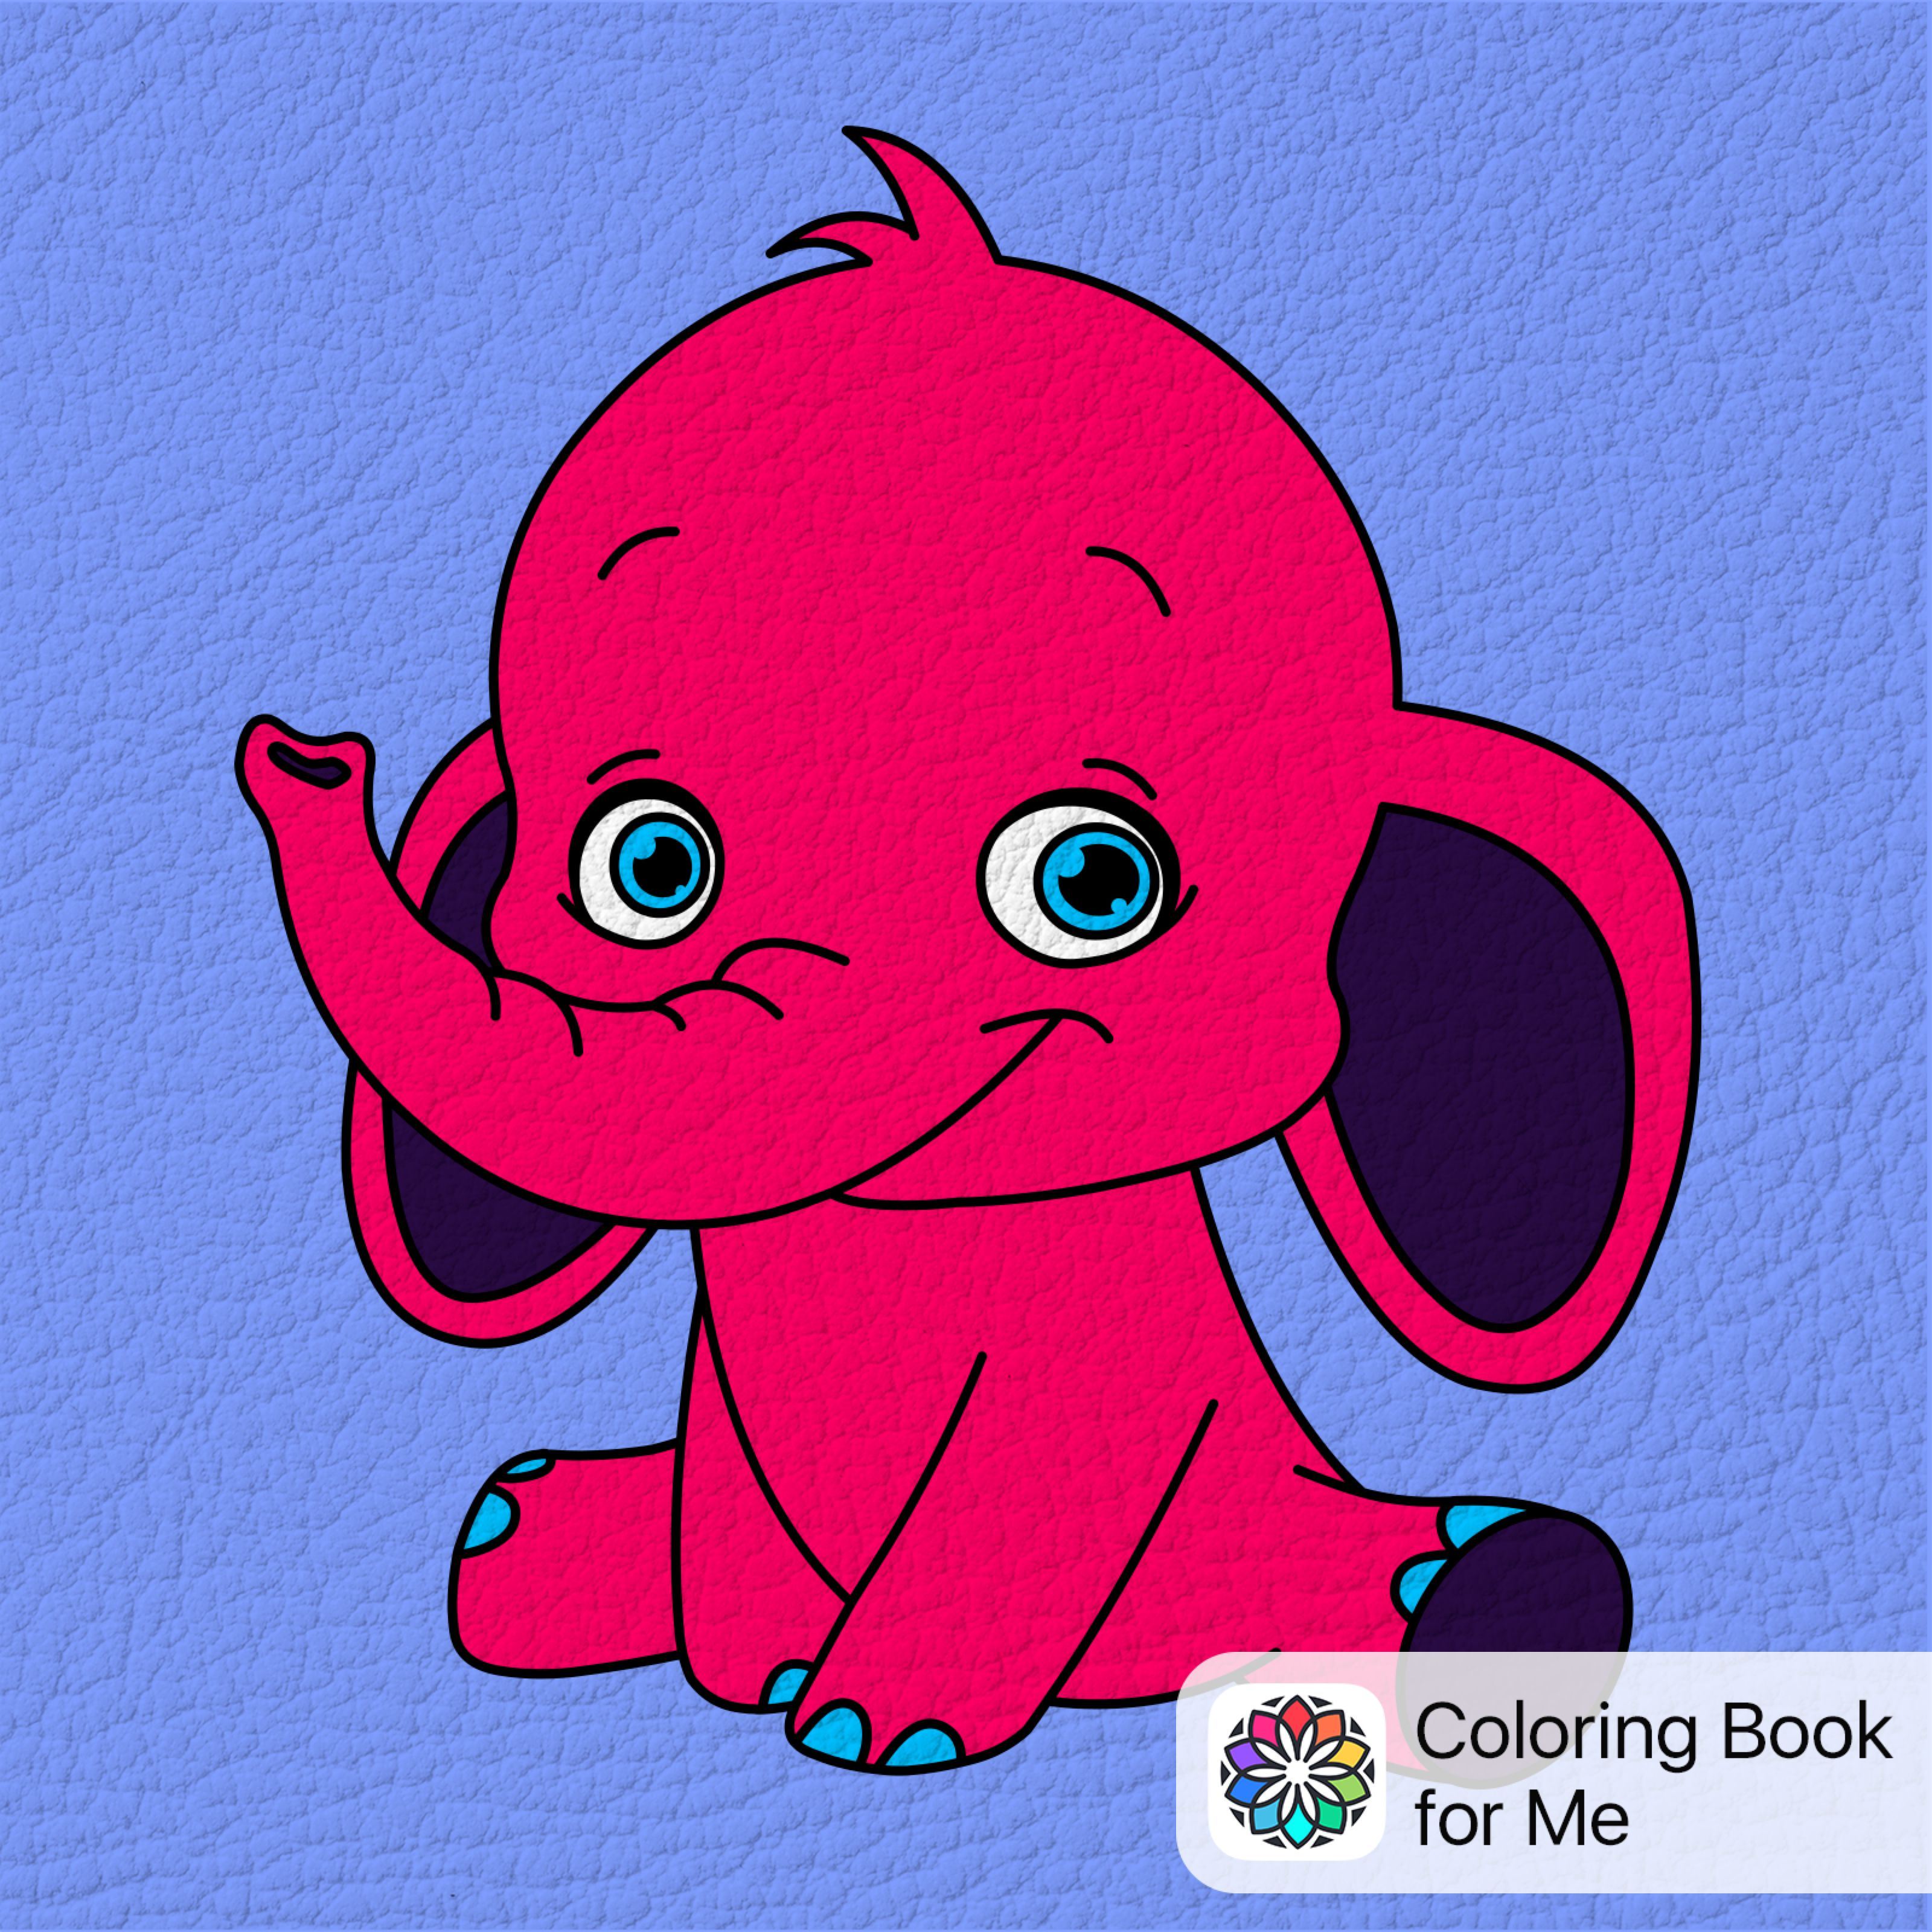 Colored with coloring book for me artududud pinterest